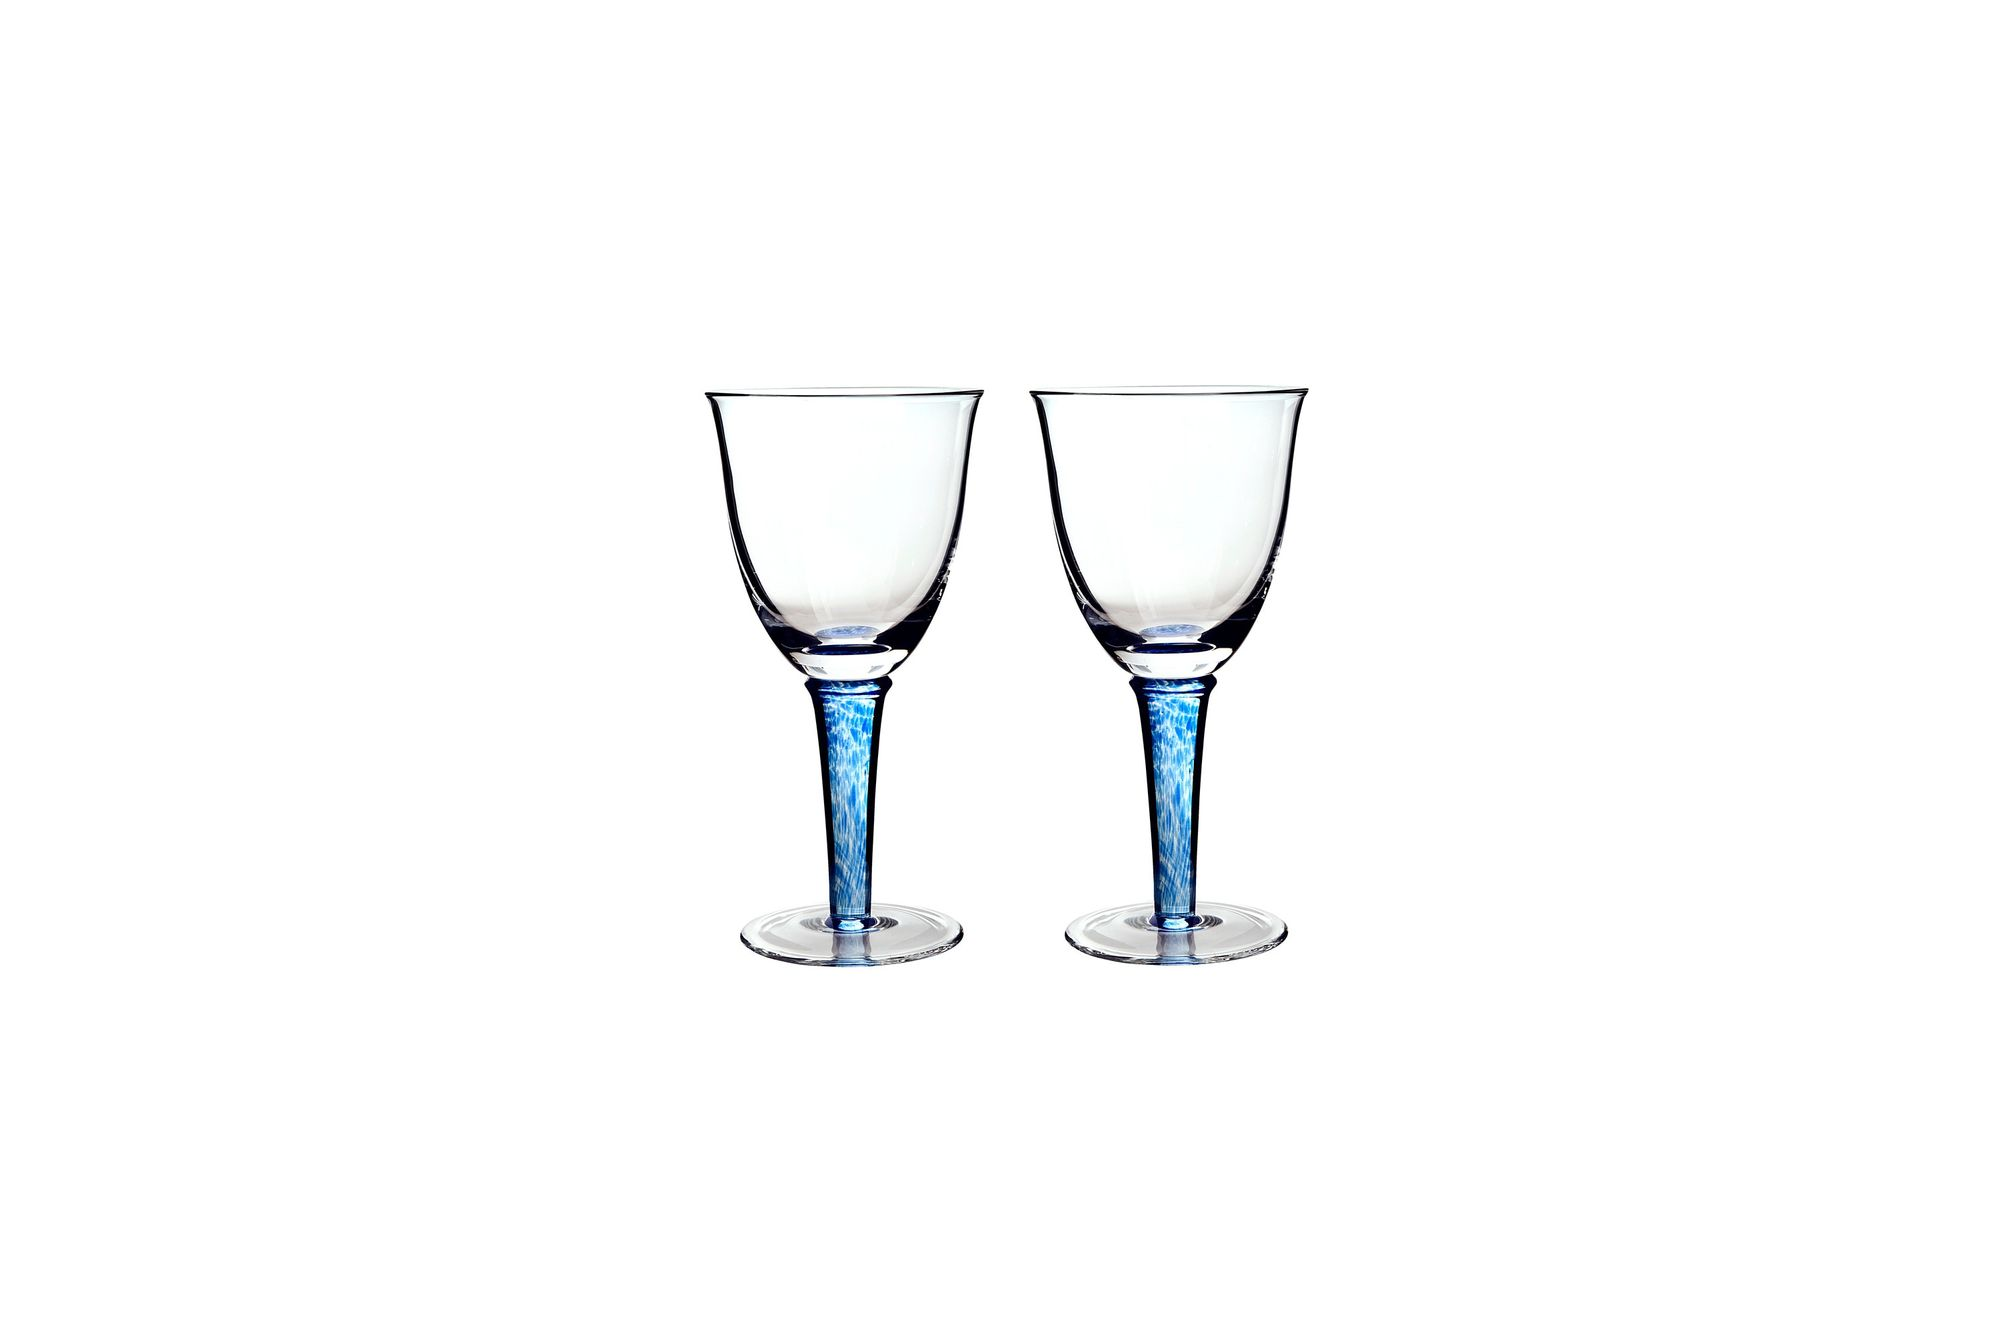 Denby Imperial Blue Pair of White Wine Glasses thumb 1